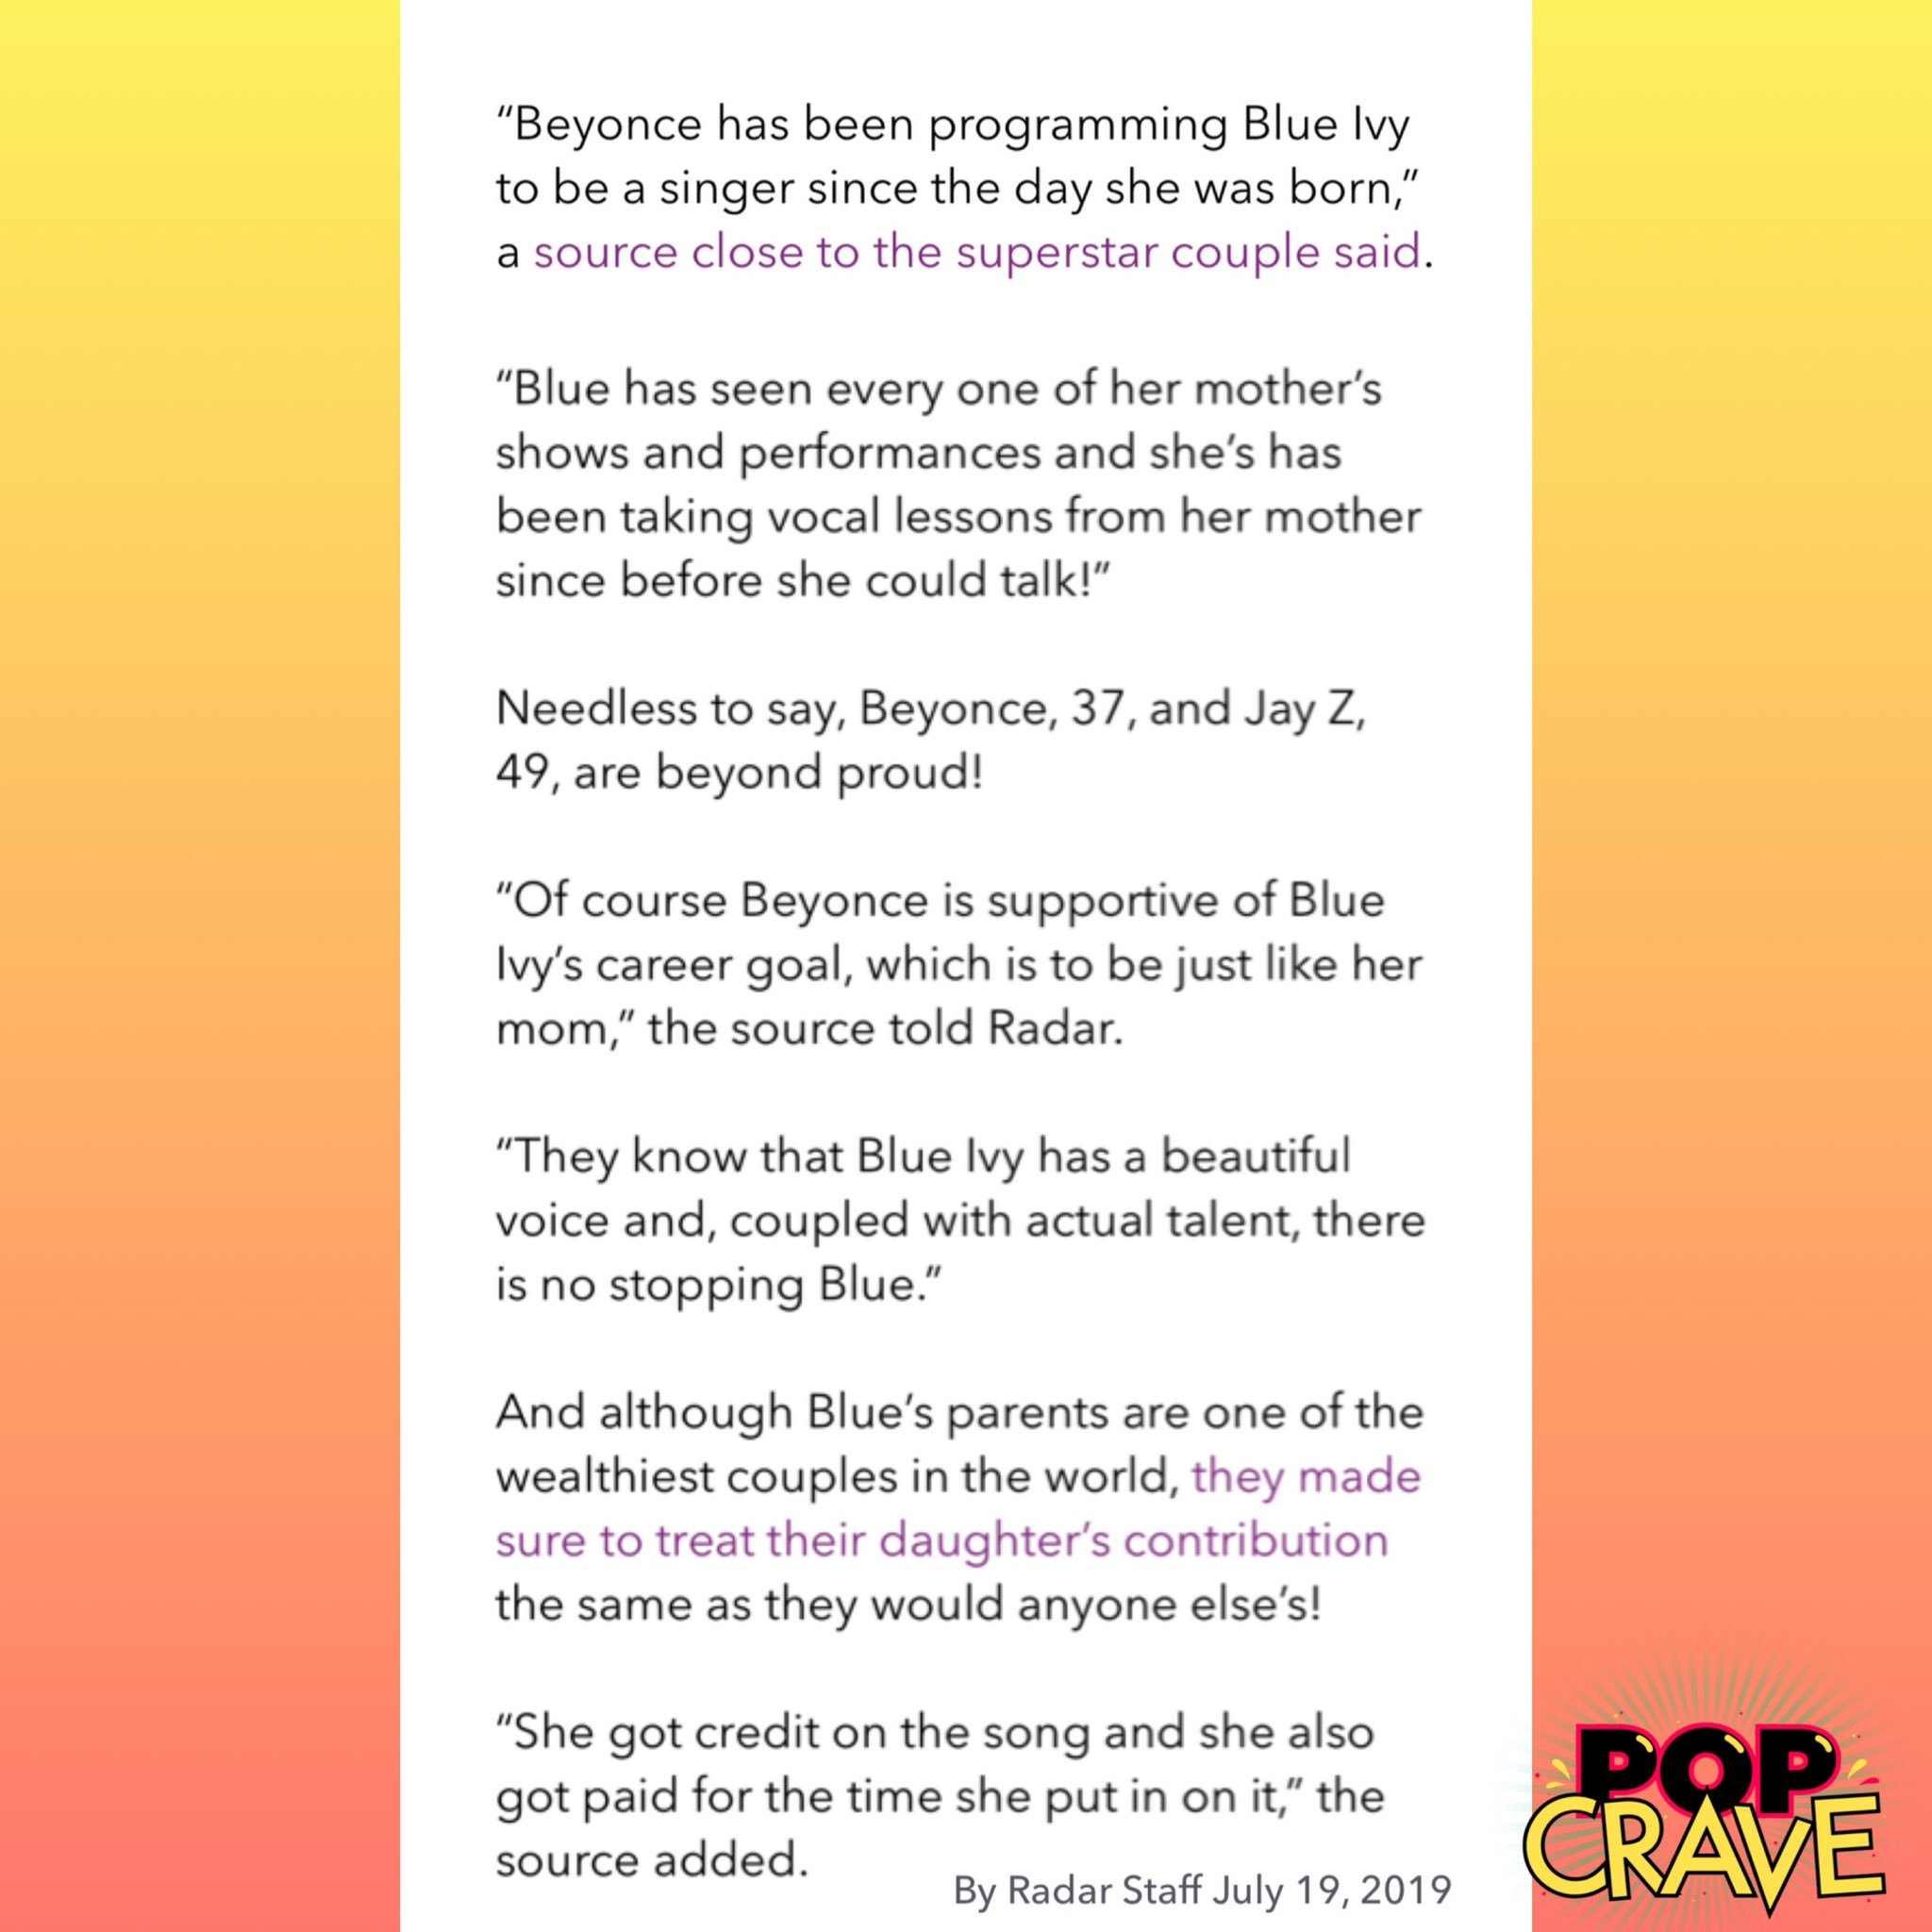 Beyoncé 'programming' Blue to be a superstar - Beyond